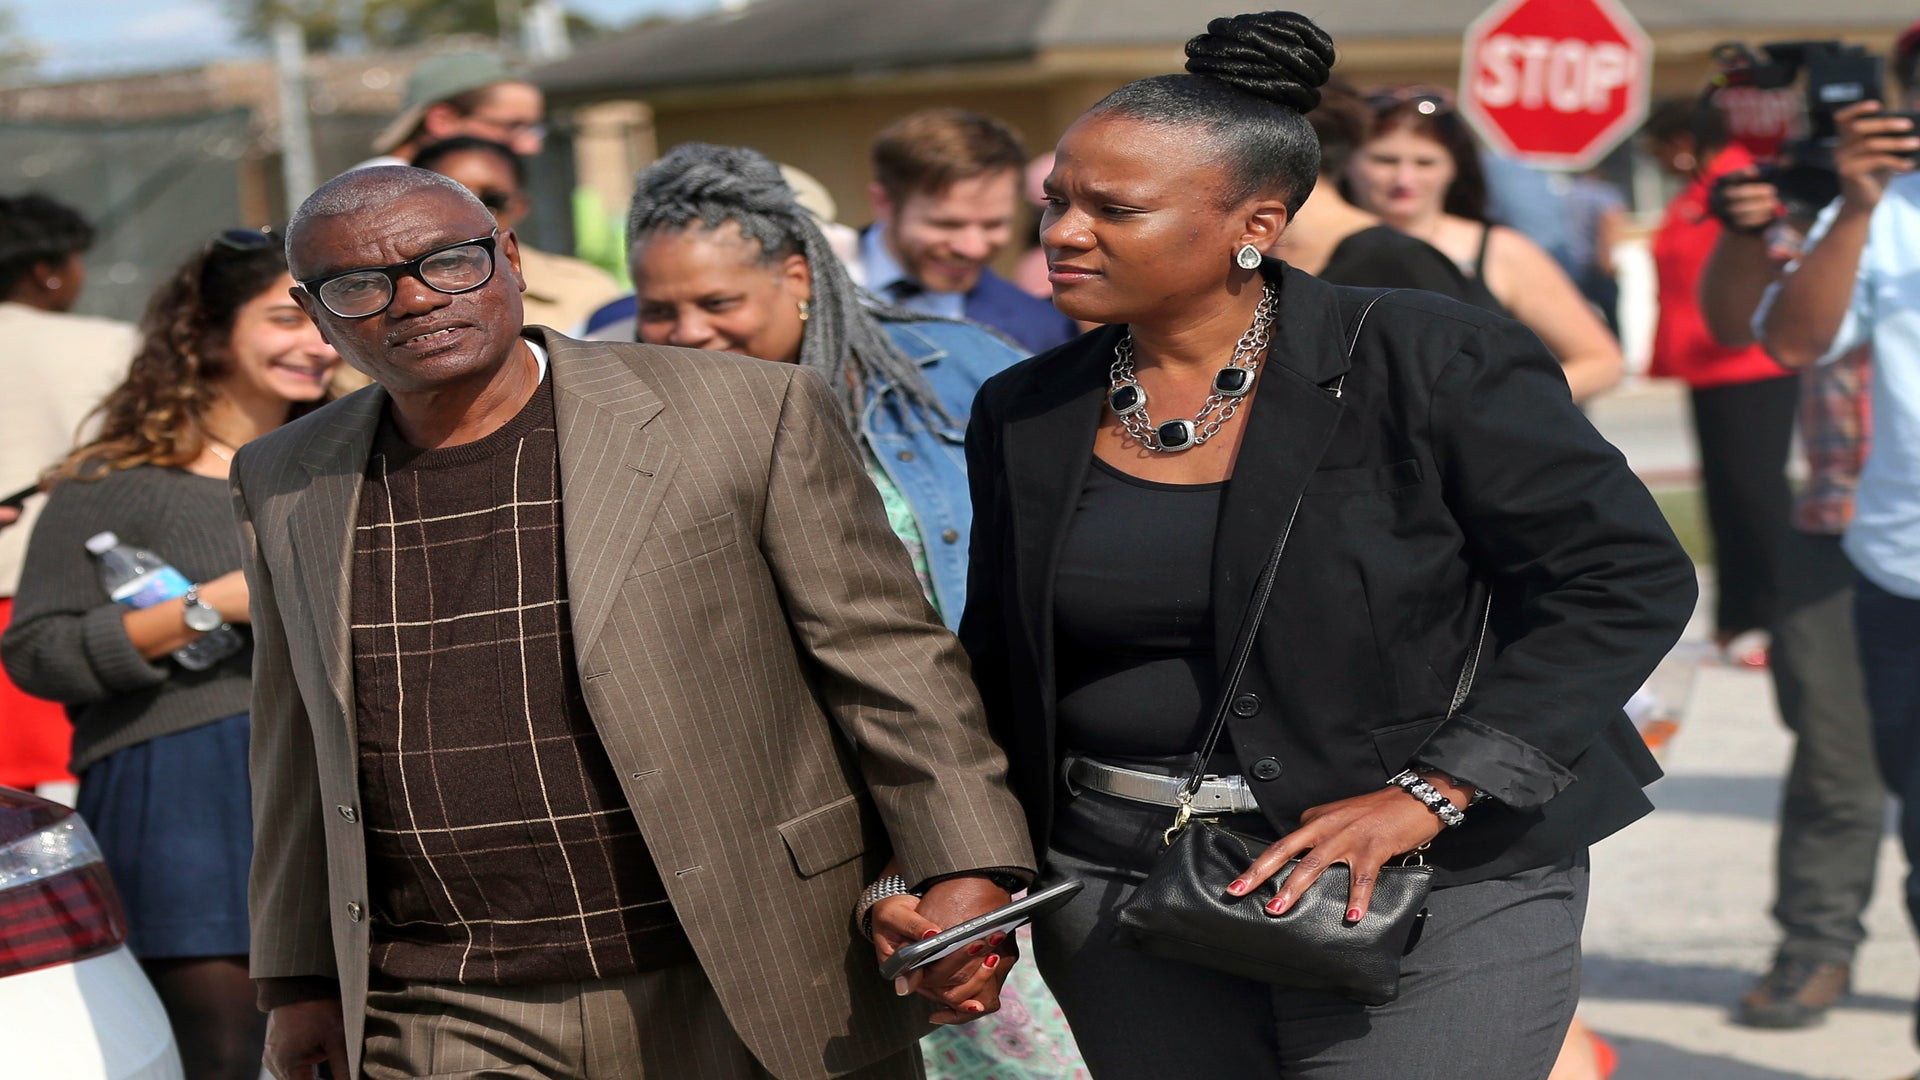 65-Year-Old Man Wrongfully Convicted of Rape as a Teen Leaves Prison After Nearly 50 Years